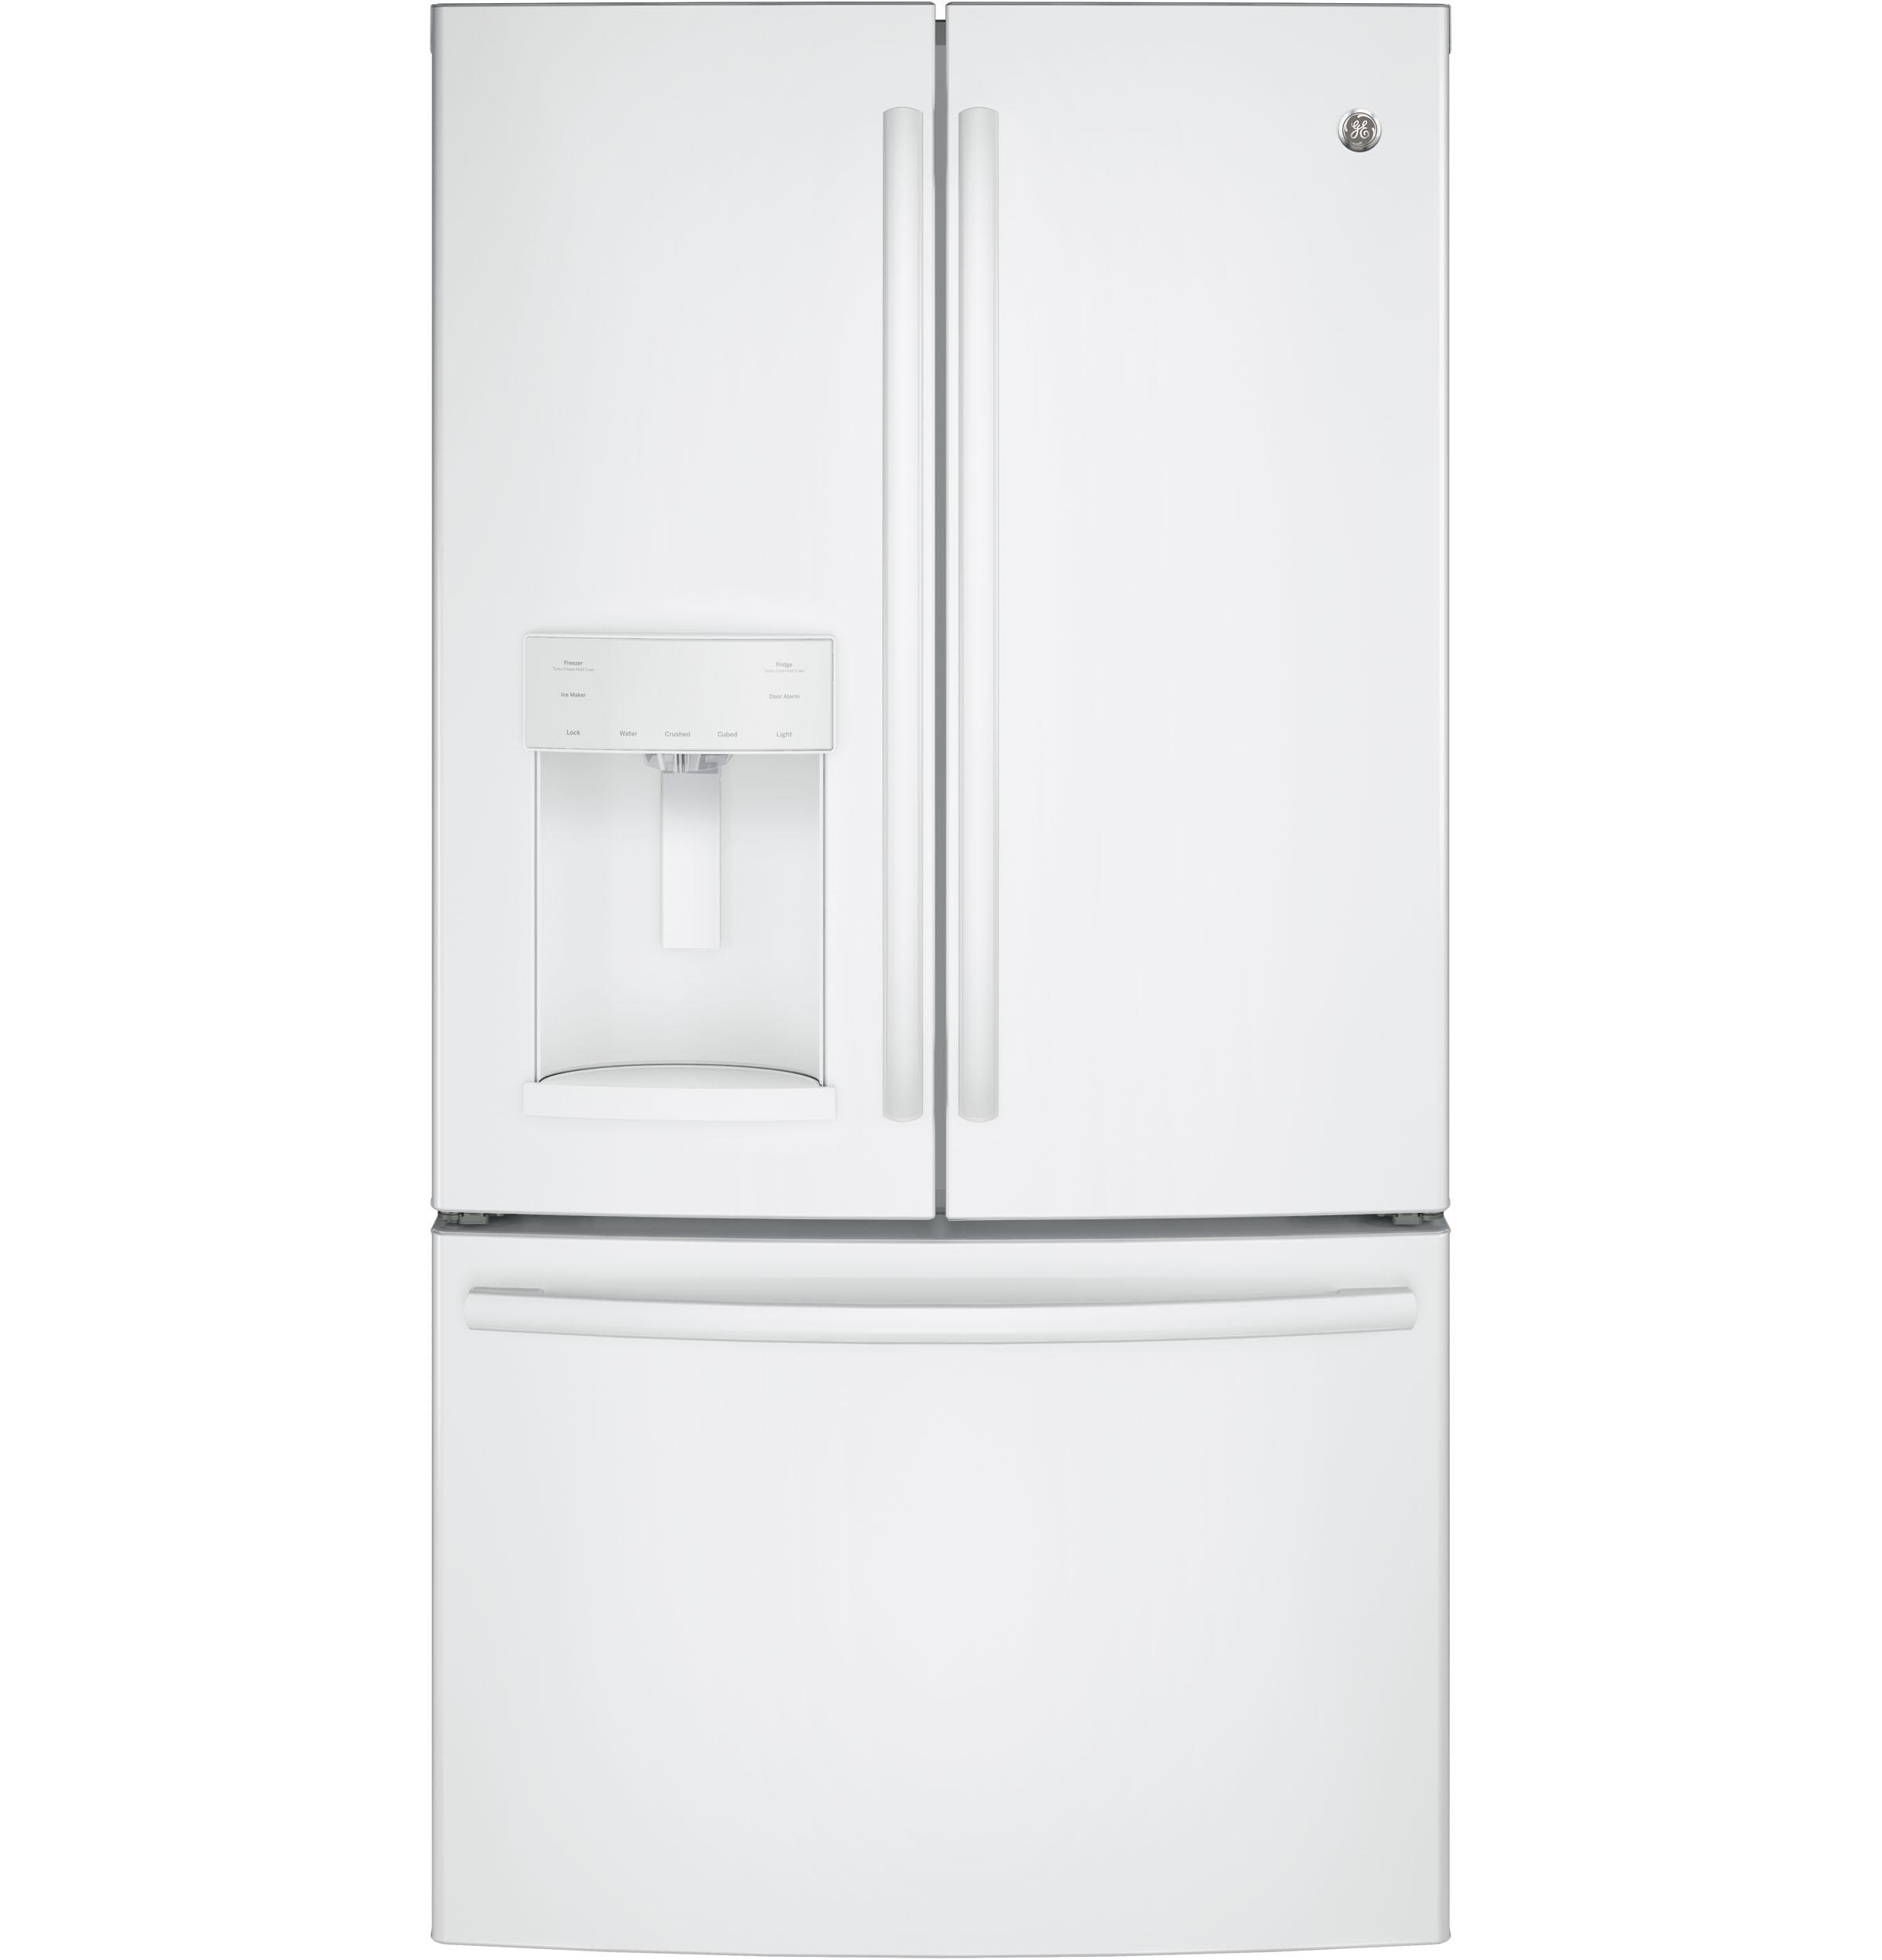 Gfe26ggkwwge Ge R Energy Star R 25 8 Cu Ft French Door